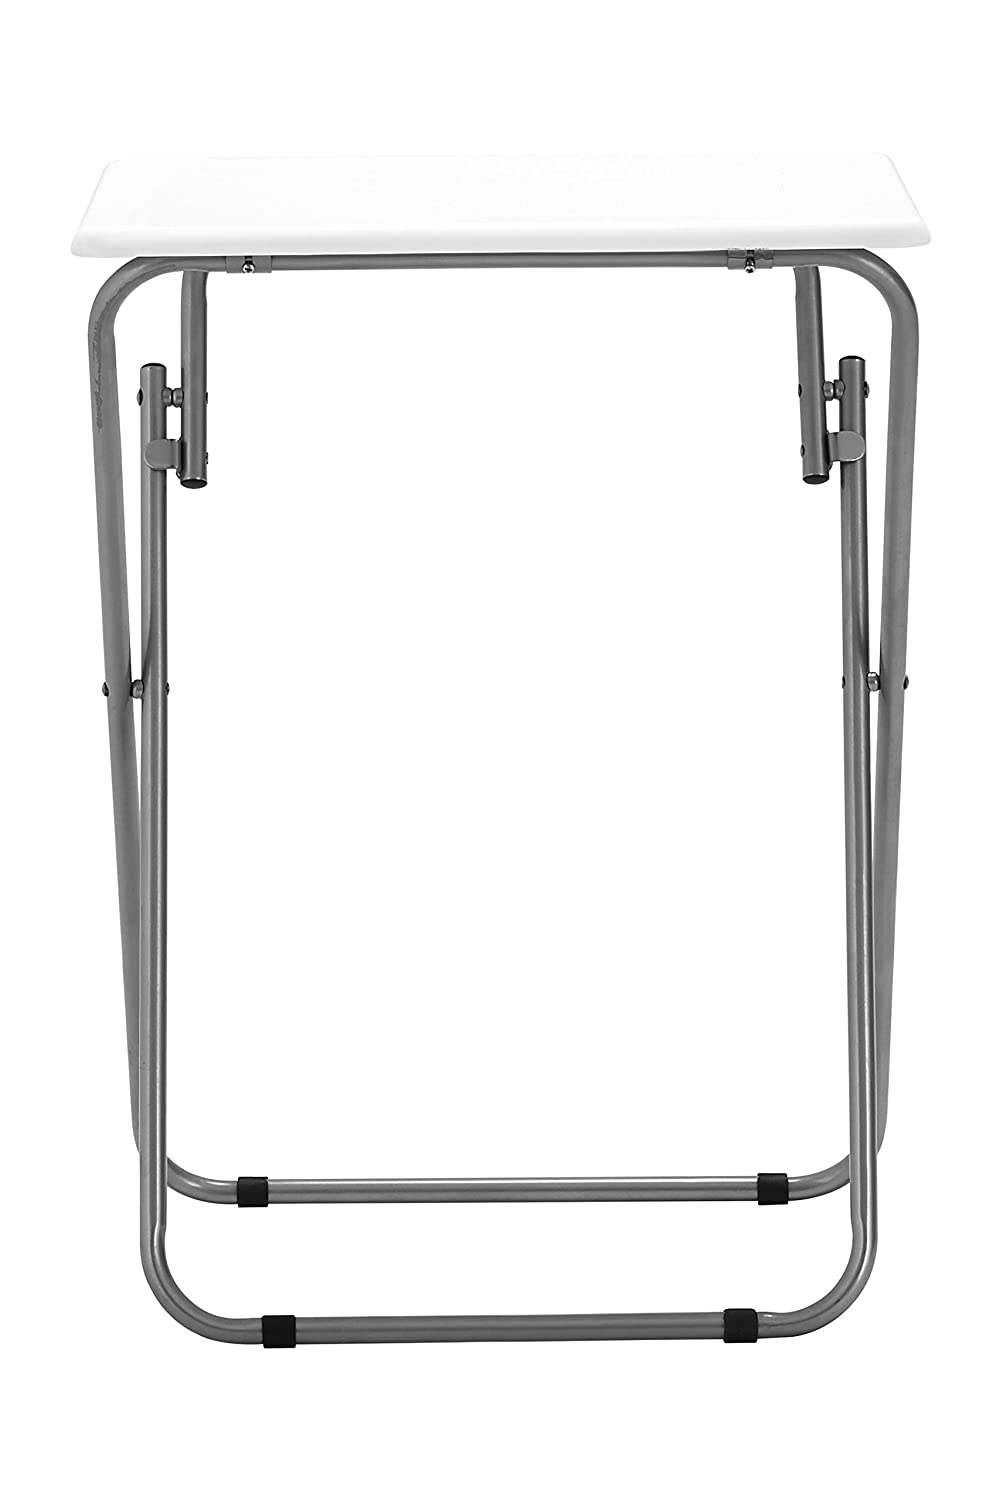 Premier Housewares Folding Table with Silver Frame, 48 x 38 x 66 cm - White 2402566 2402566_White